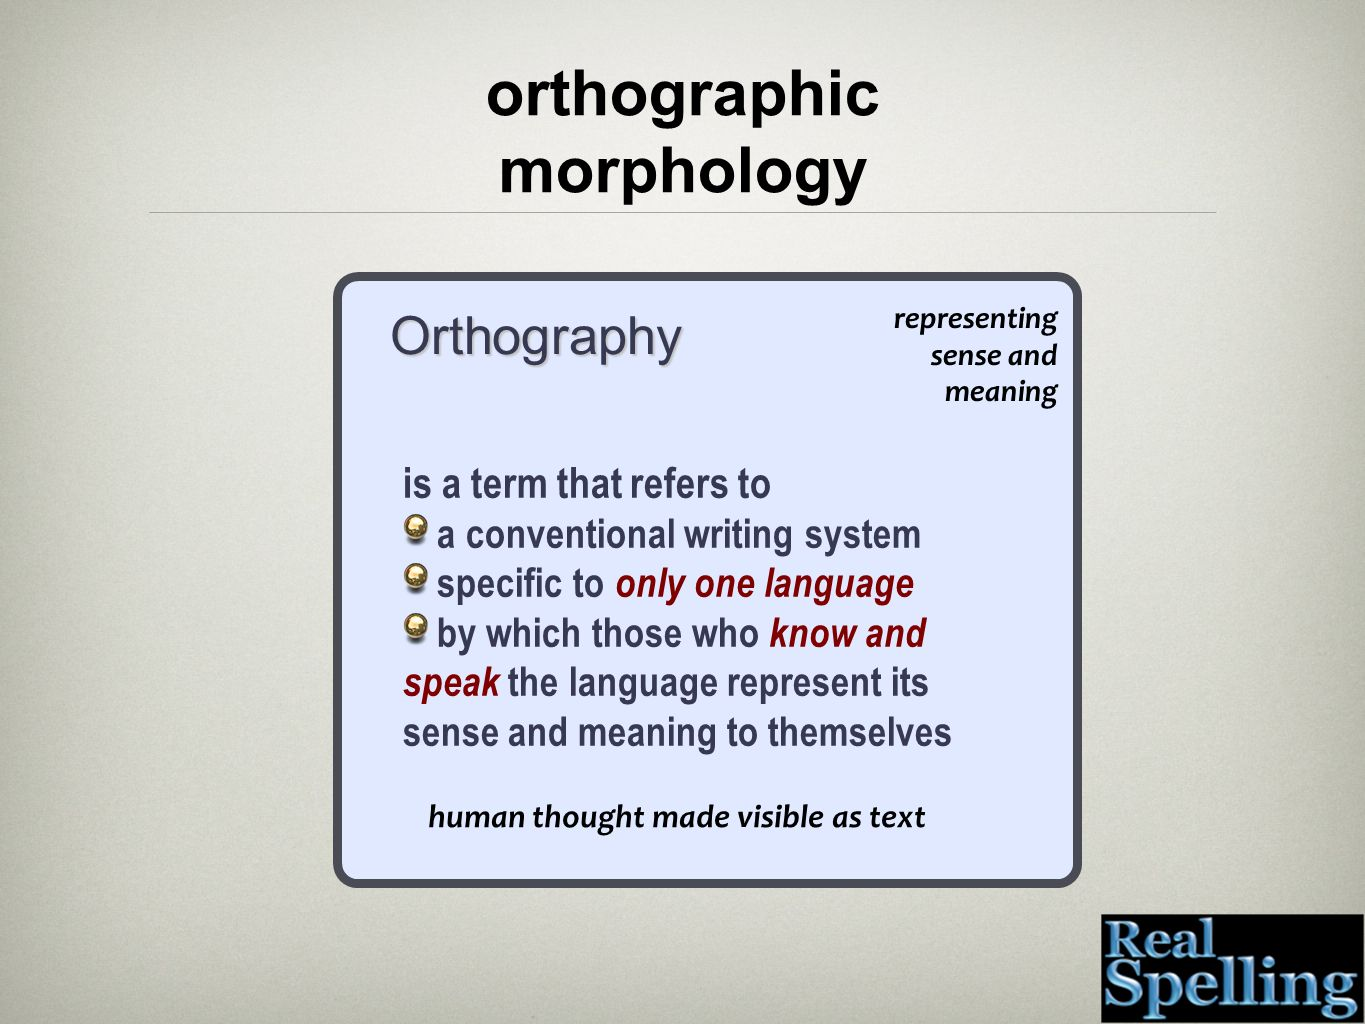 orthographic morphology